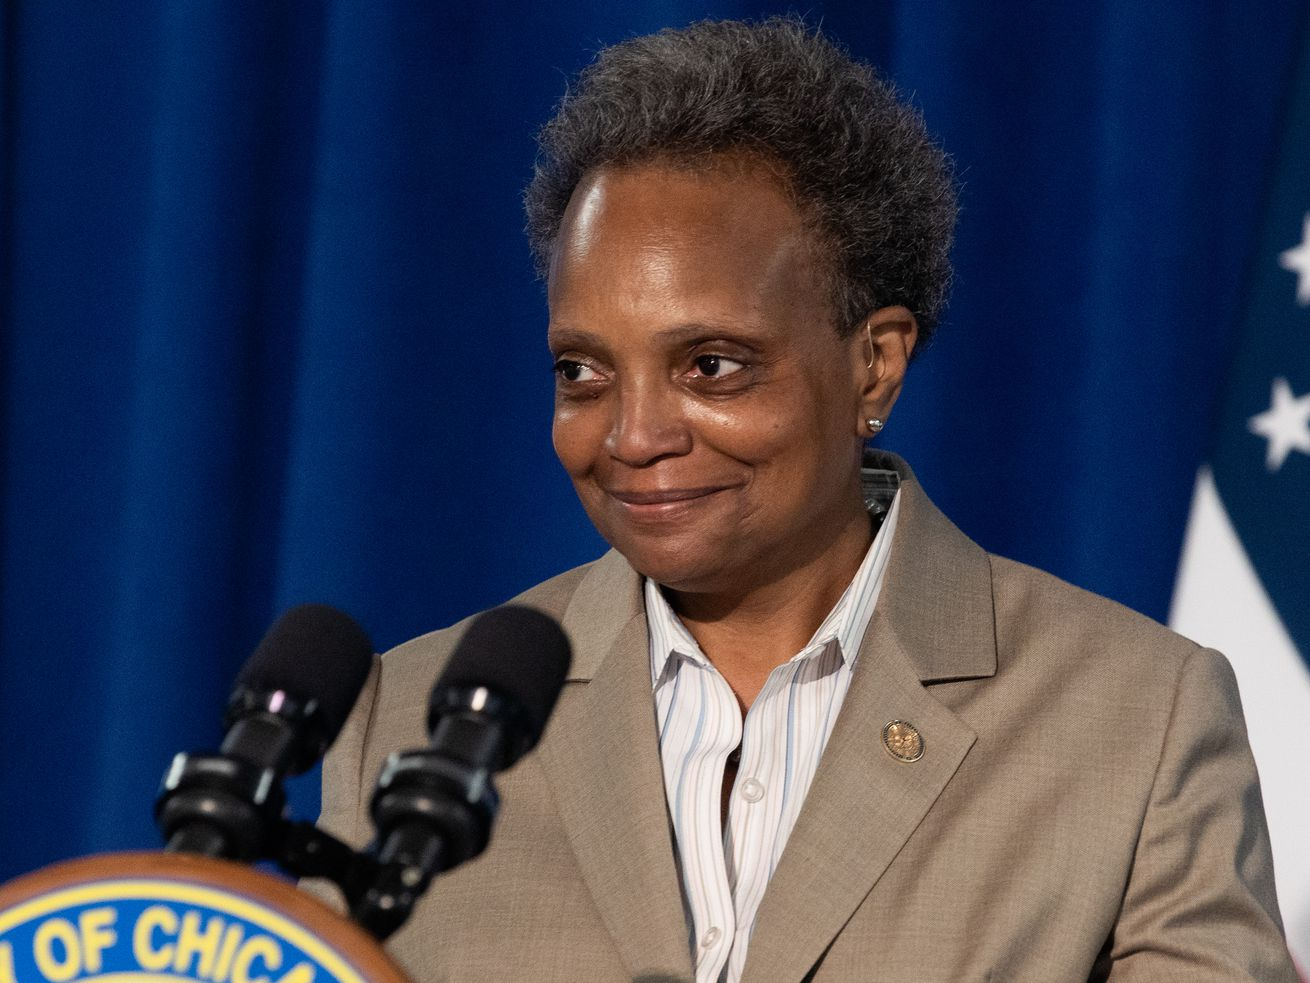 Chicago Mayor Lori Lightfoot smiles as she walks to the podium to answer questions.